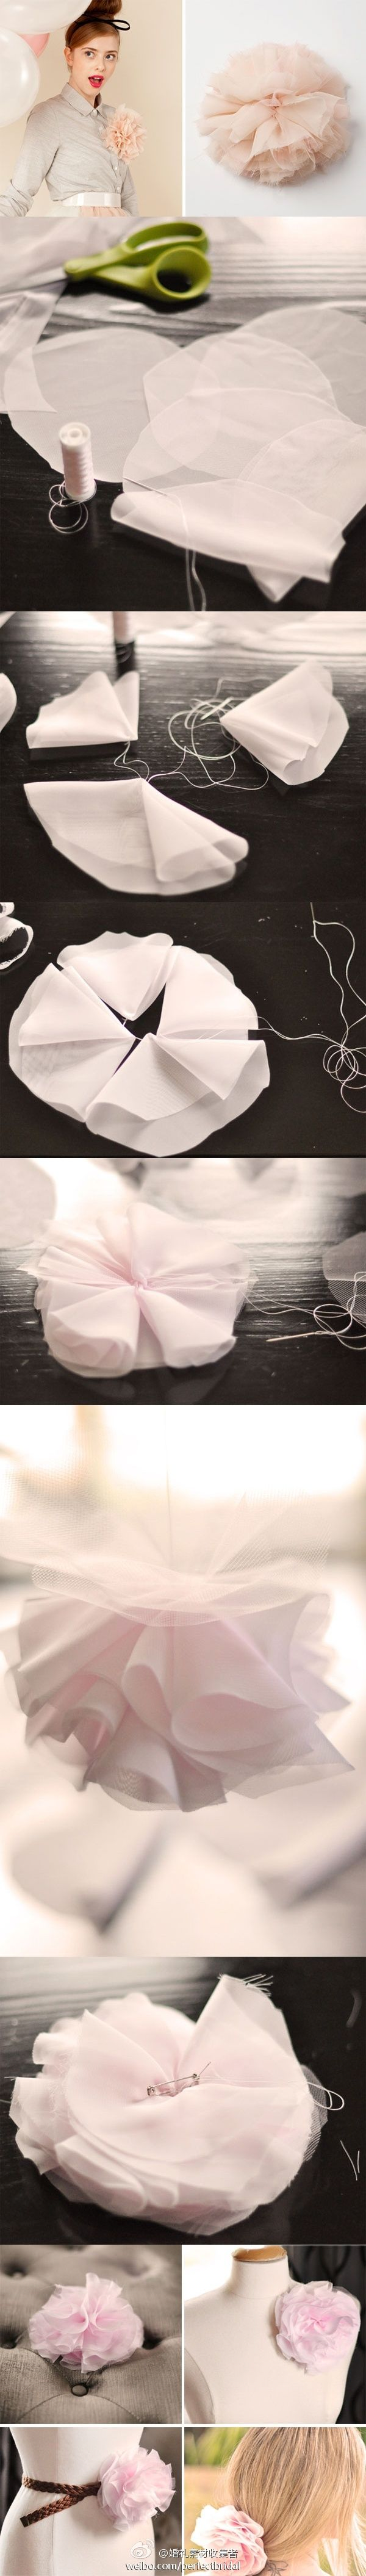 DIY tul rosa flores - glue a clip on the back to use as brooch or hair clip!